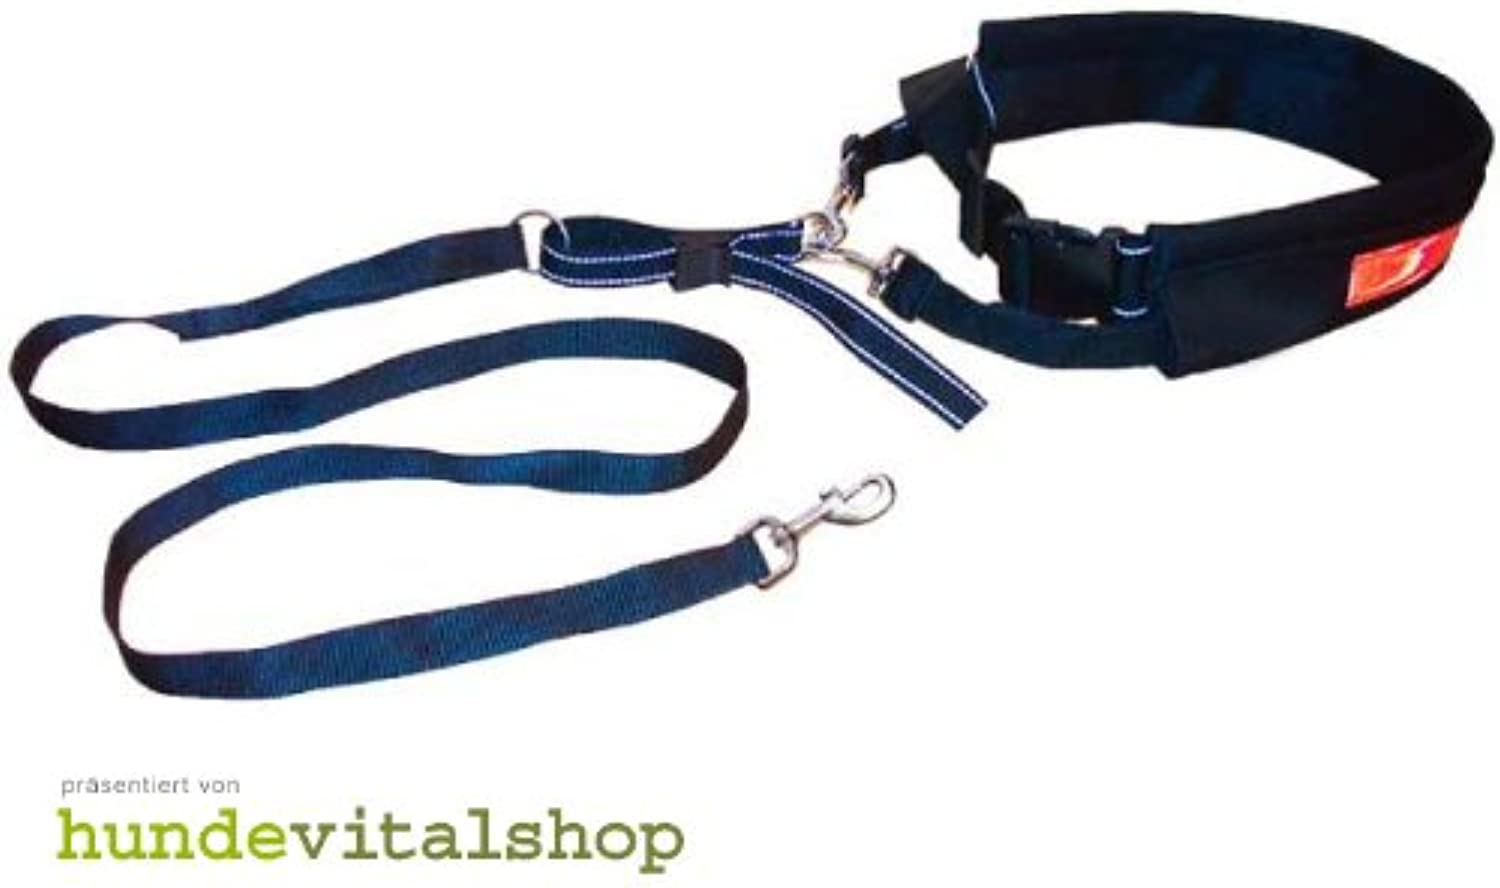 DTE Jogging Belt with Expander, Quick Release Buckle and 1 m Dog Lead